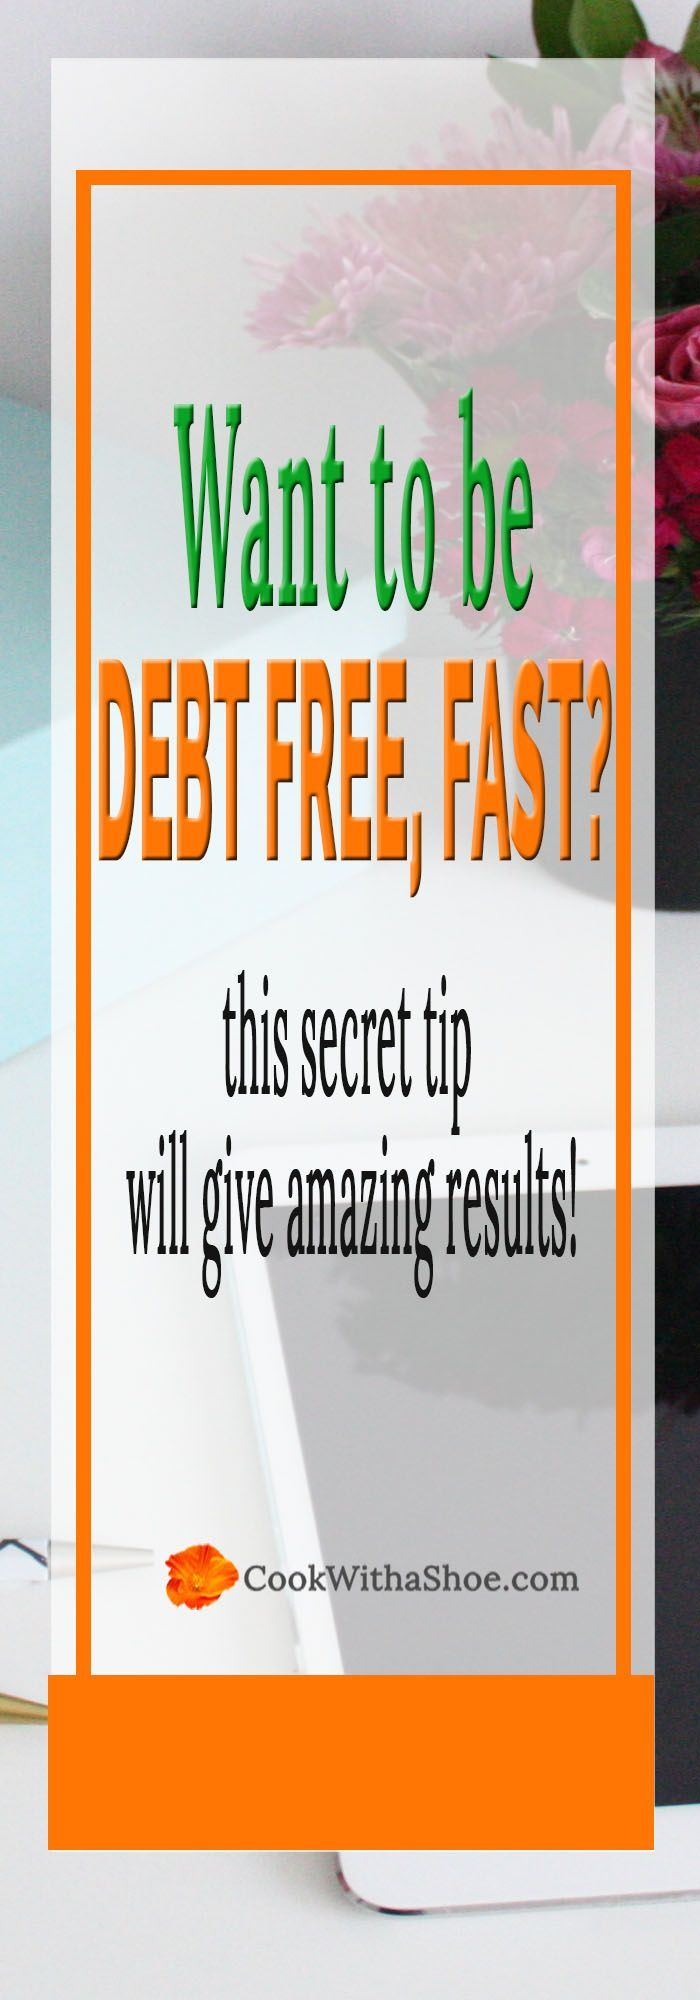 How do you pay off debt quickly?